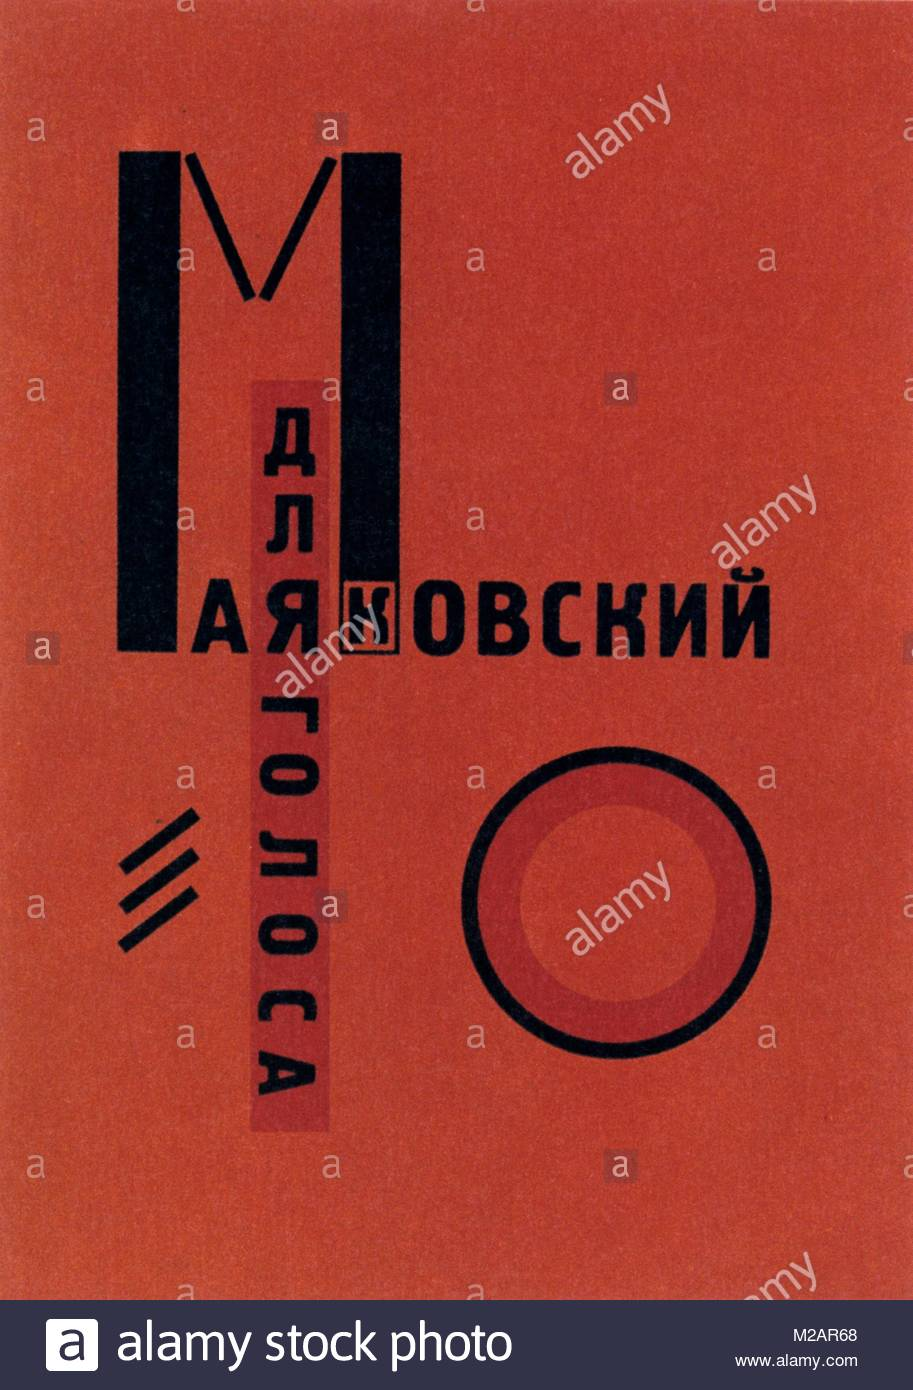 Design by Lazar Lissitzky for the cover of a book by the Vladimir Mayakovsky - Stock Image